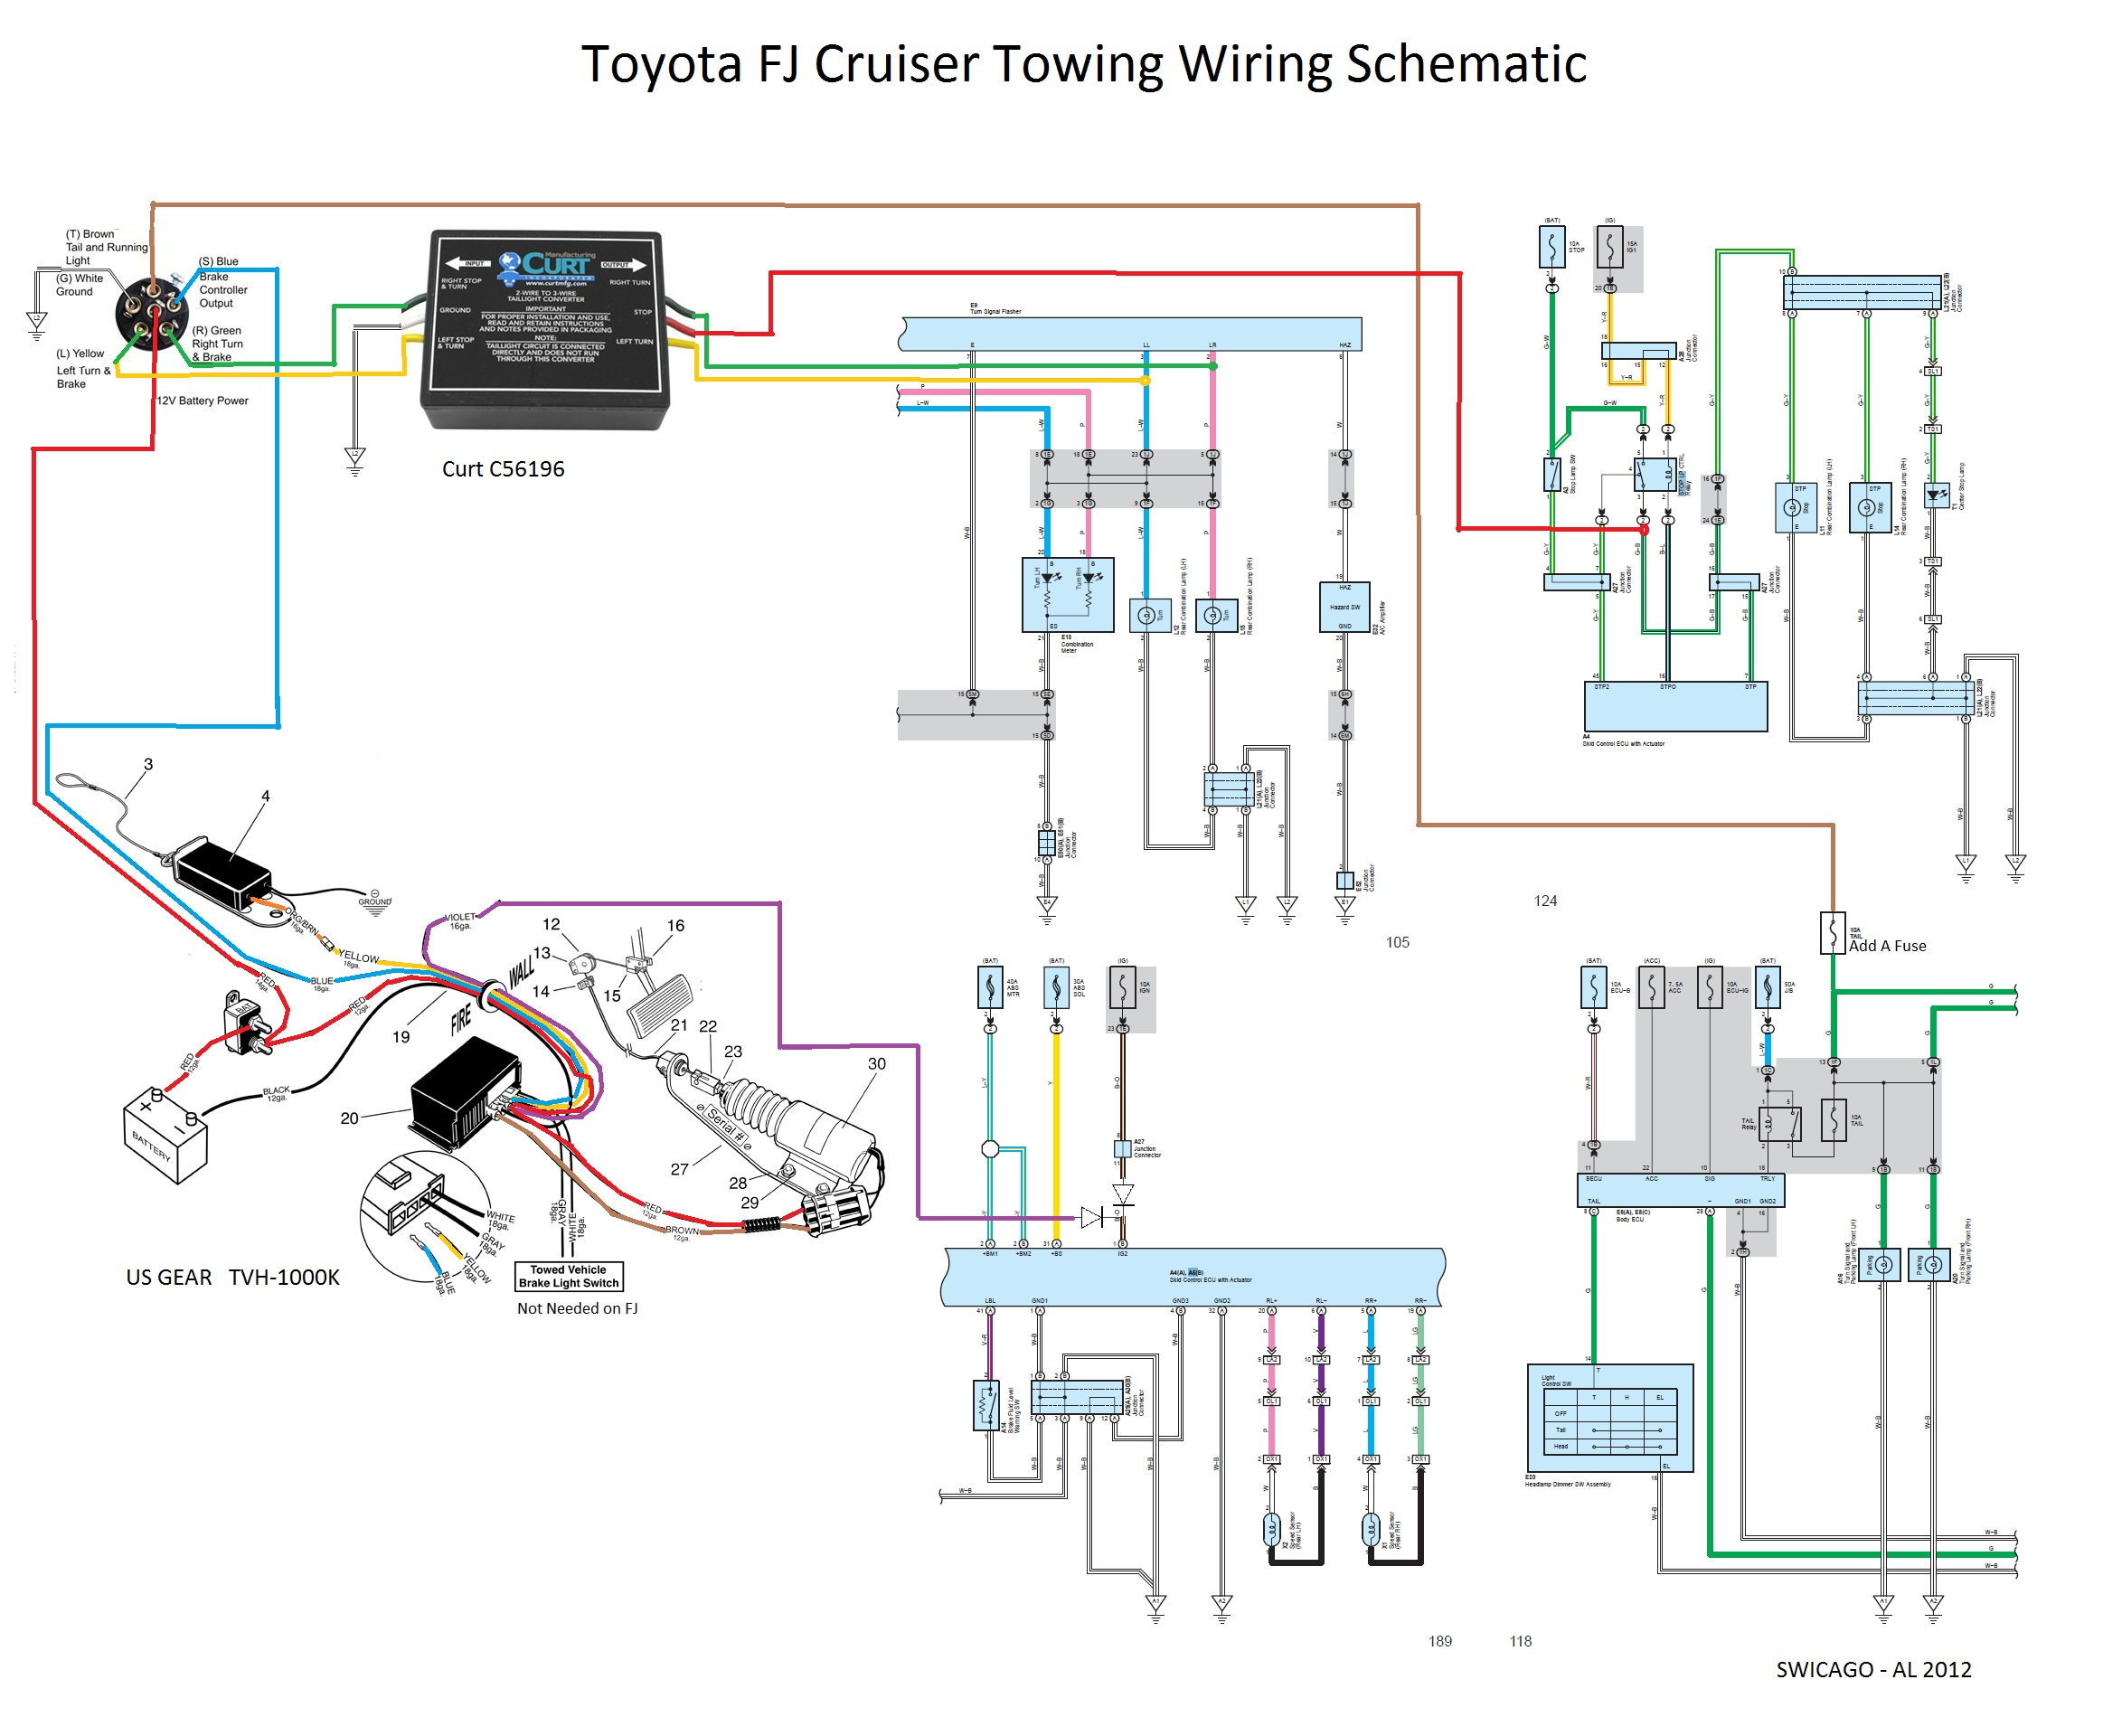 2007 toyota tundra wiring diagram Download-Toyota Tundra Trailer Wiring Harness Diagram Beautiful Flat tow 6mt Yes It Can Be Done toyota 8-e